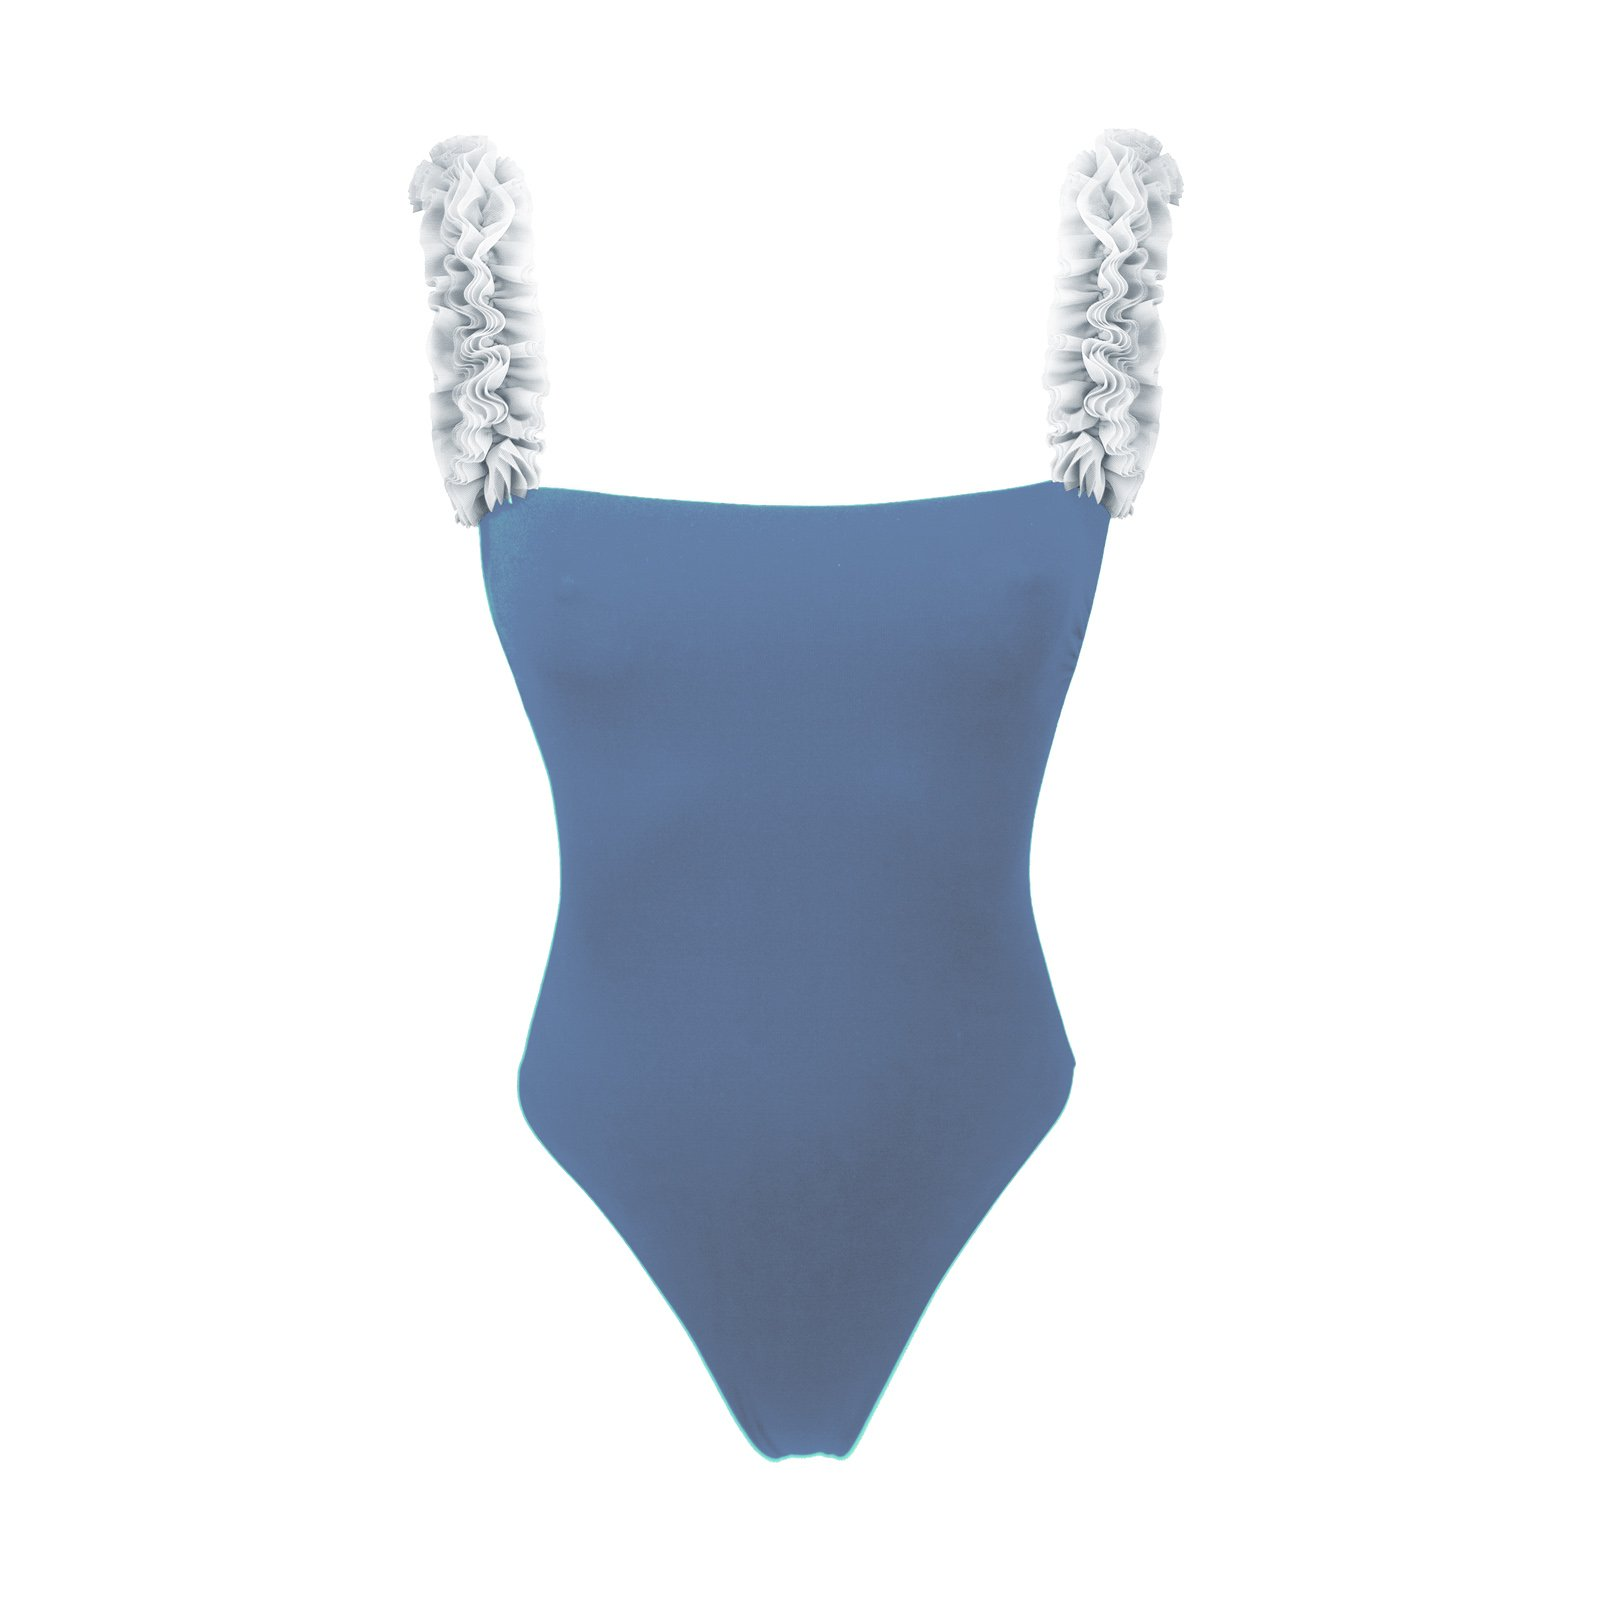 Rebel Angel sustainable swimwear recicled swimsuit eco bikini kinda 3d swimwear kindaswimwear costumi da bagno sostenibili riciclati tessuti riciclati econyl